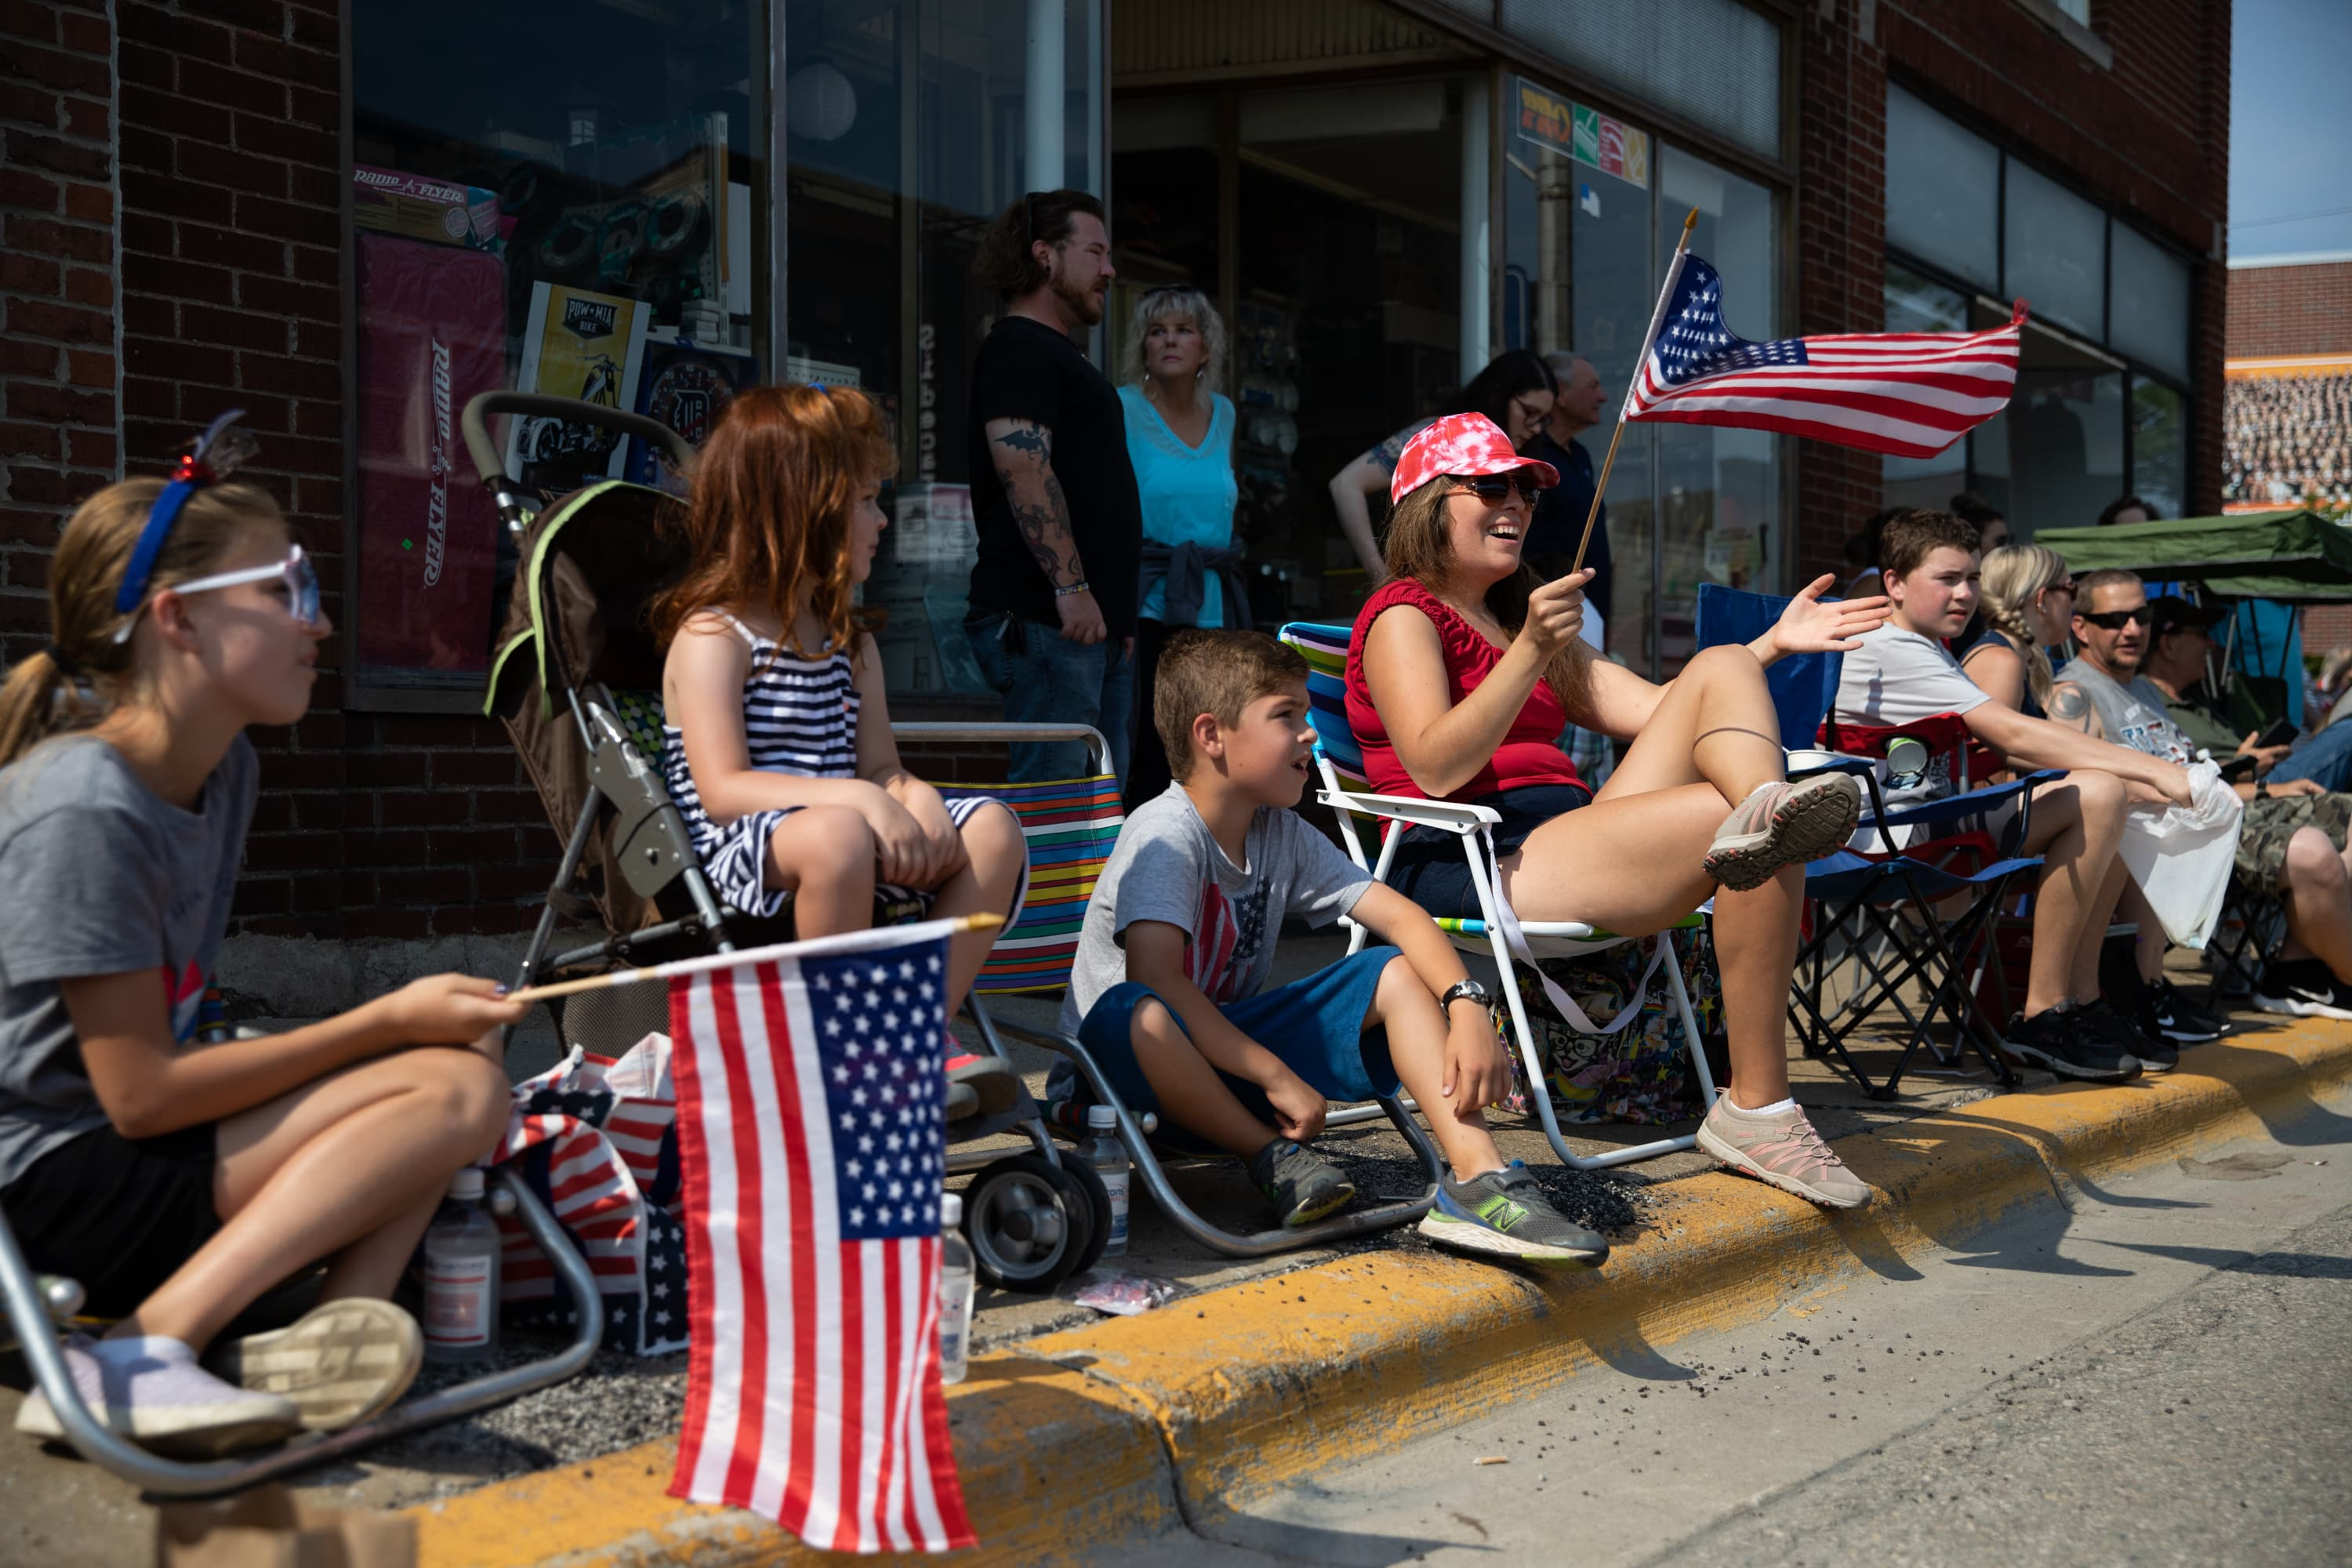 U.S. celebrates July Fourth as nation emerges from devastating Covid pandemic